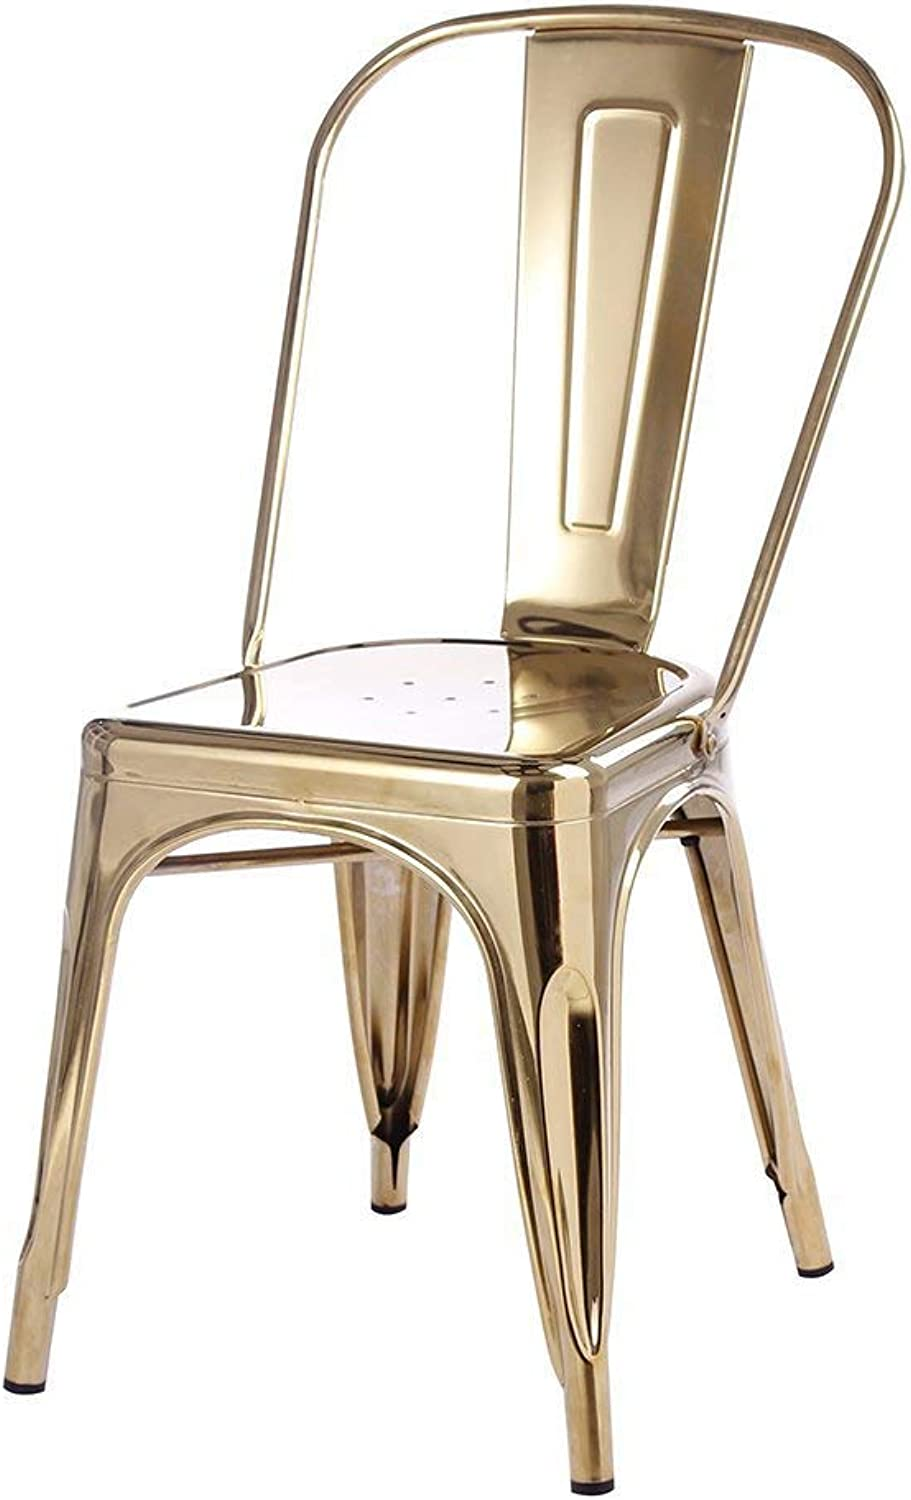 Tolix Style Dining Chair, gold